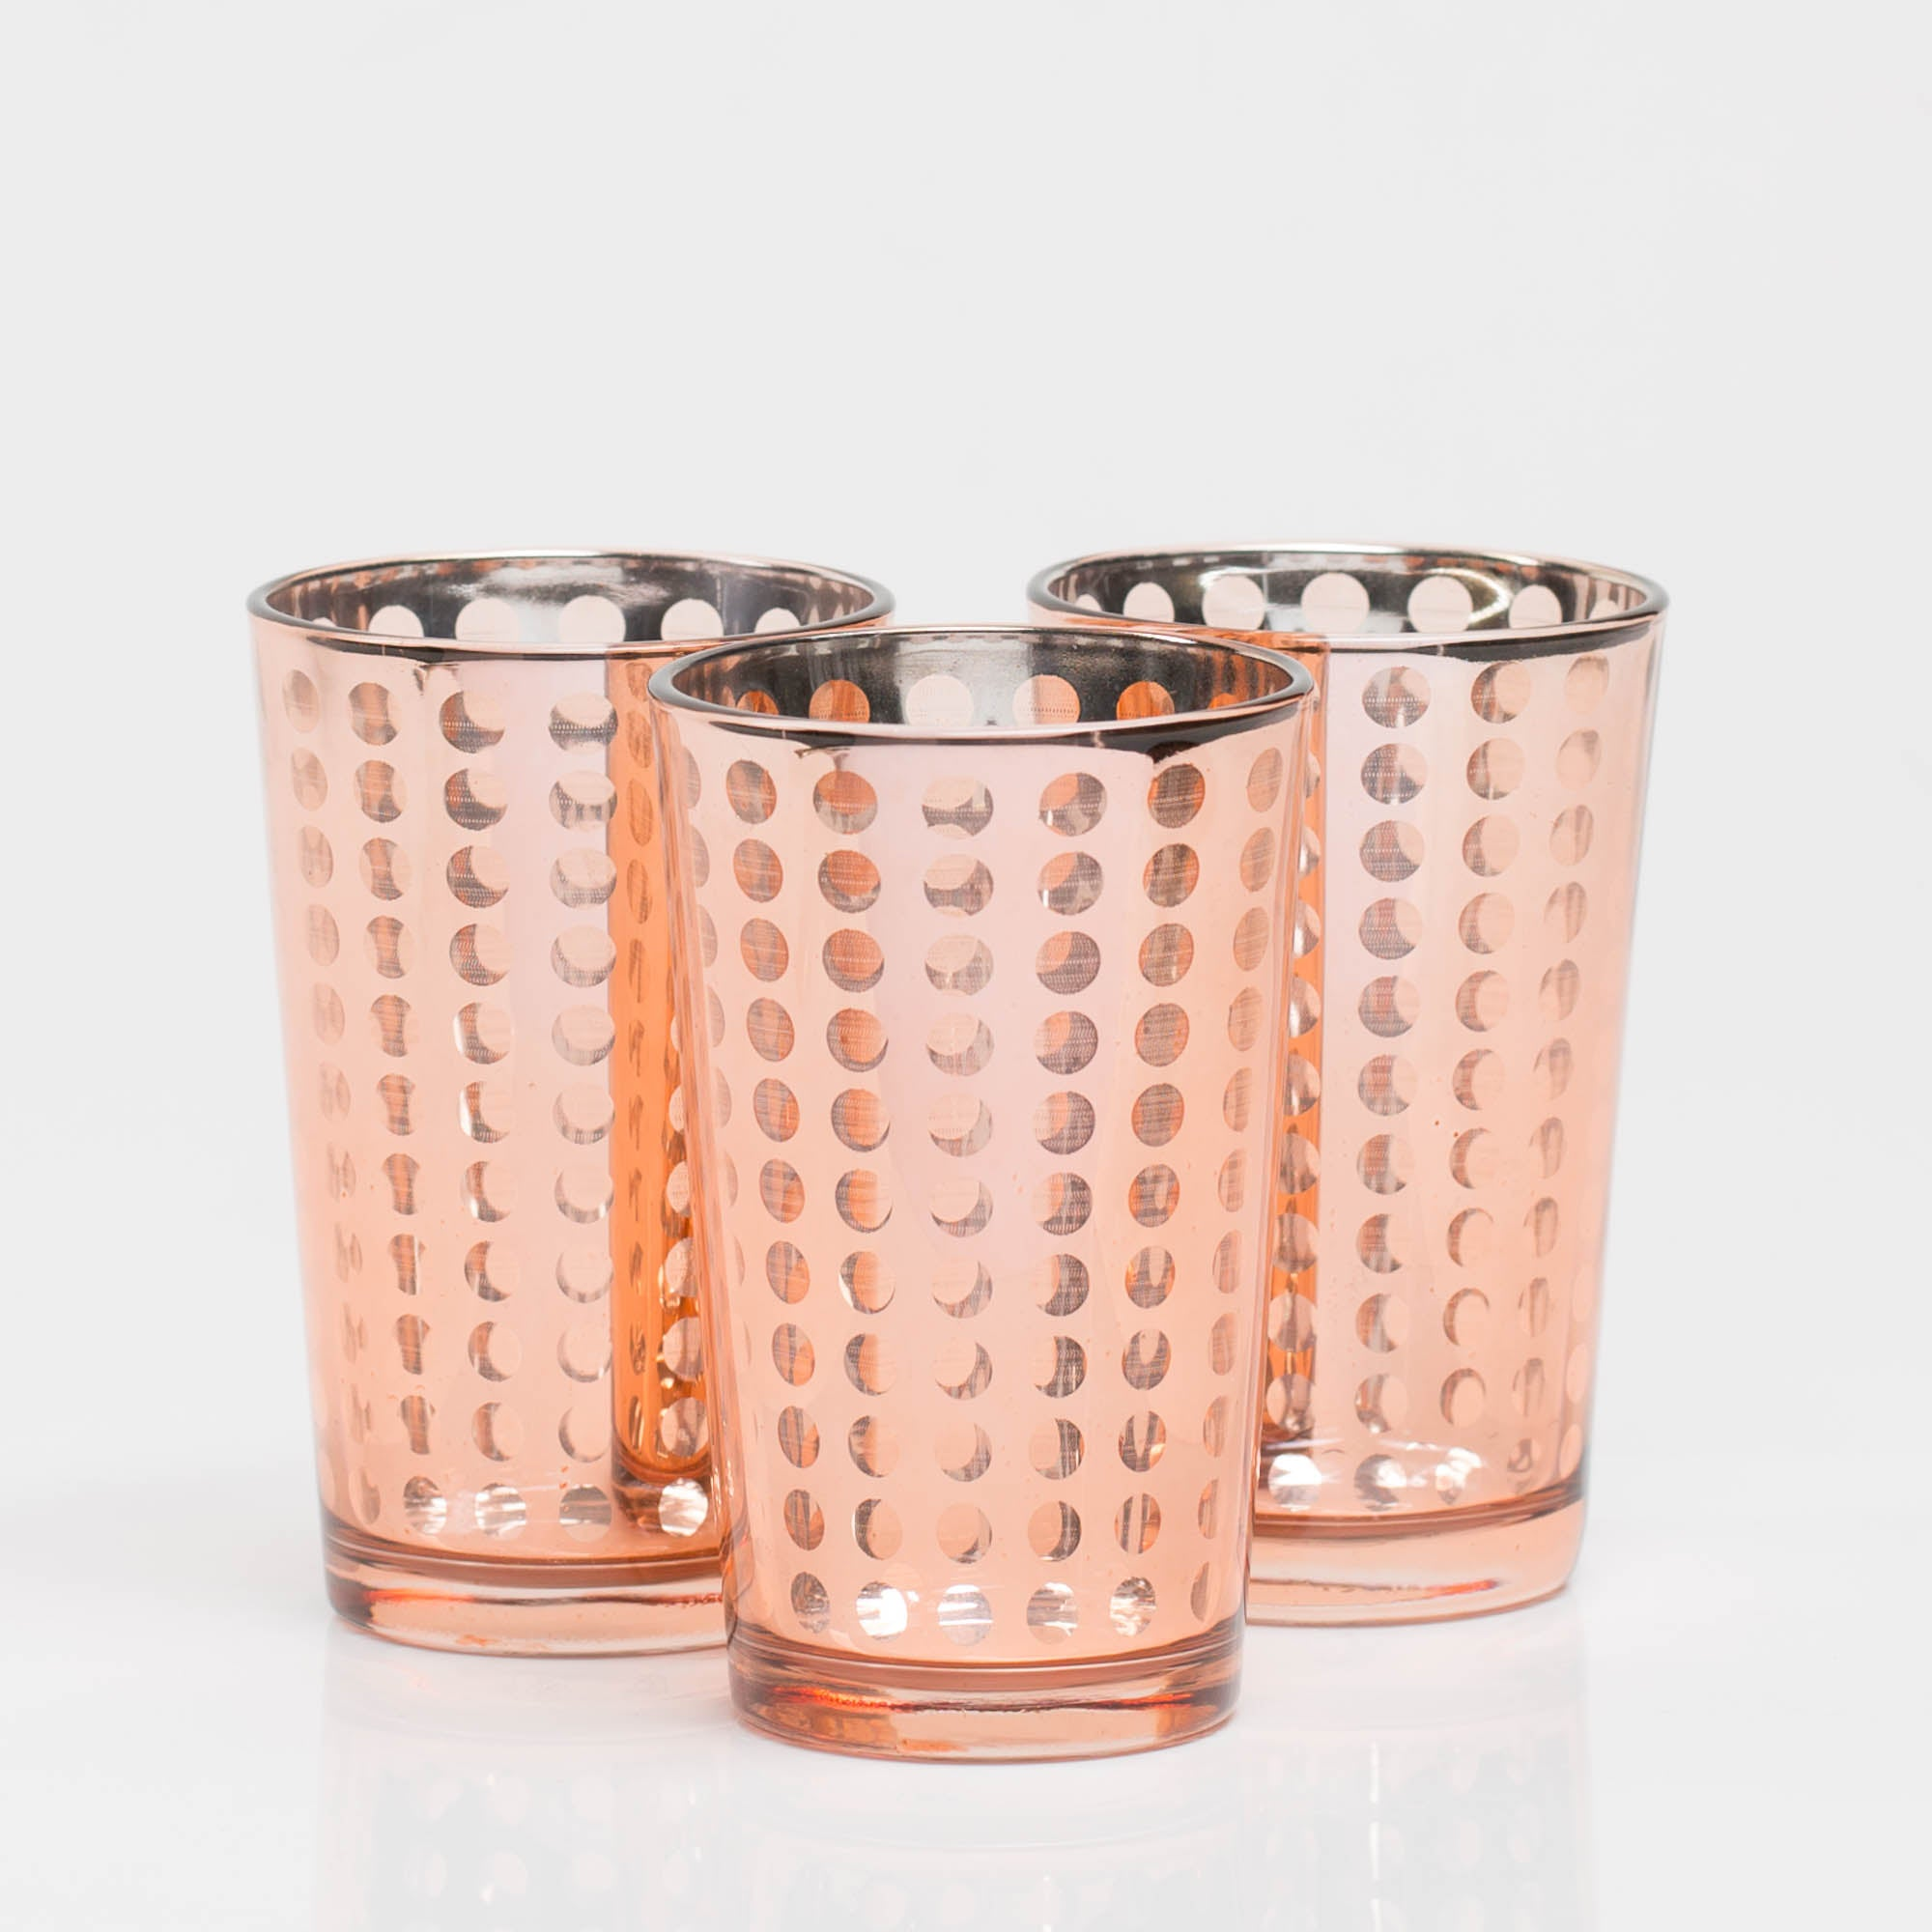 richland rose gold dotted glass holder large set of 48